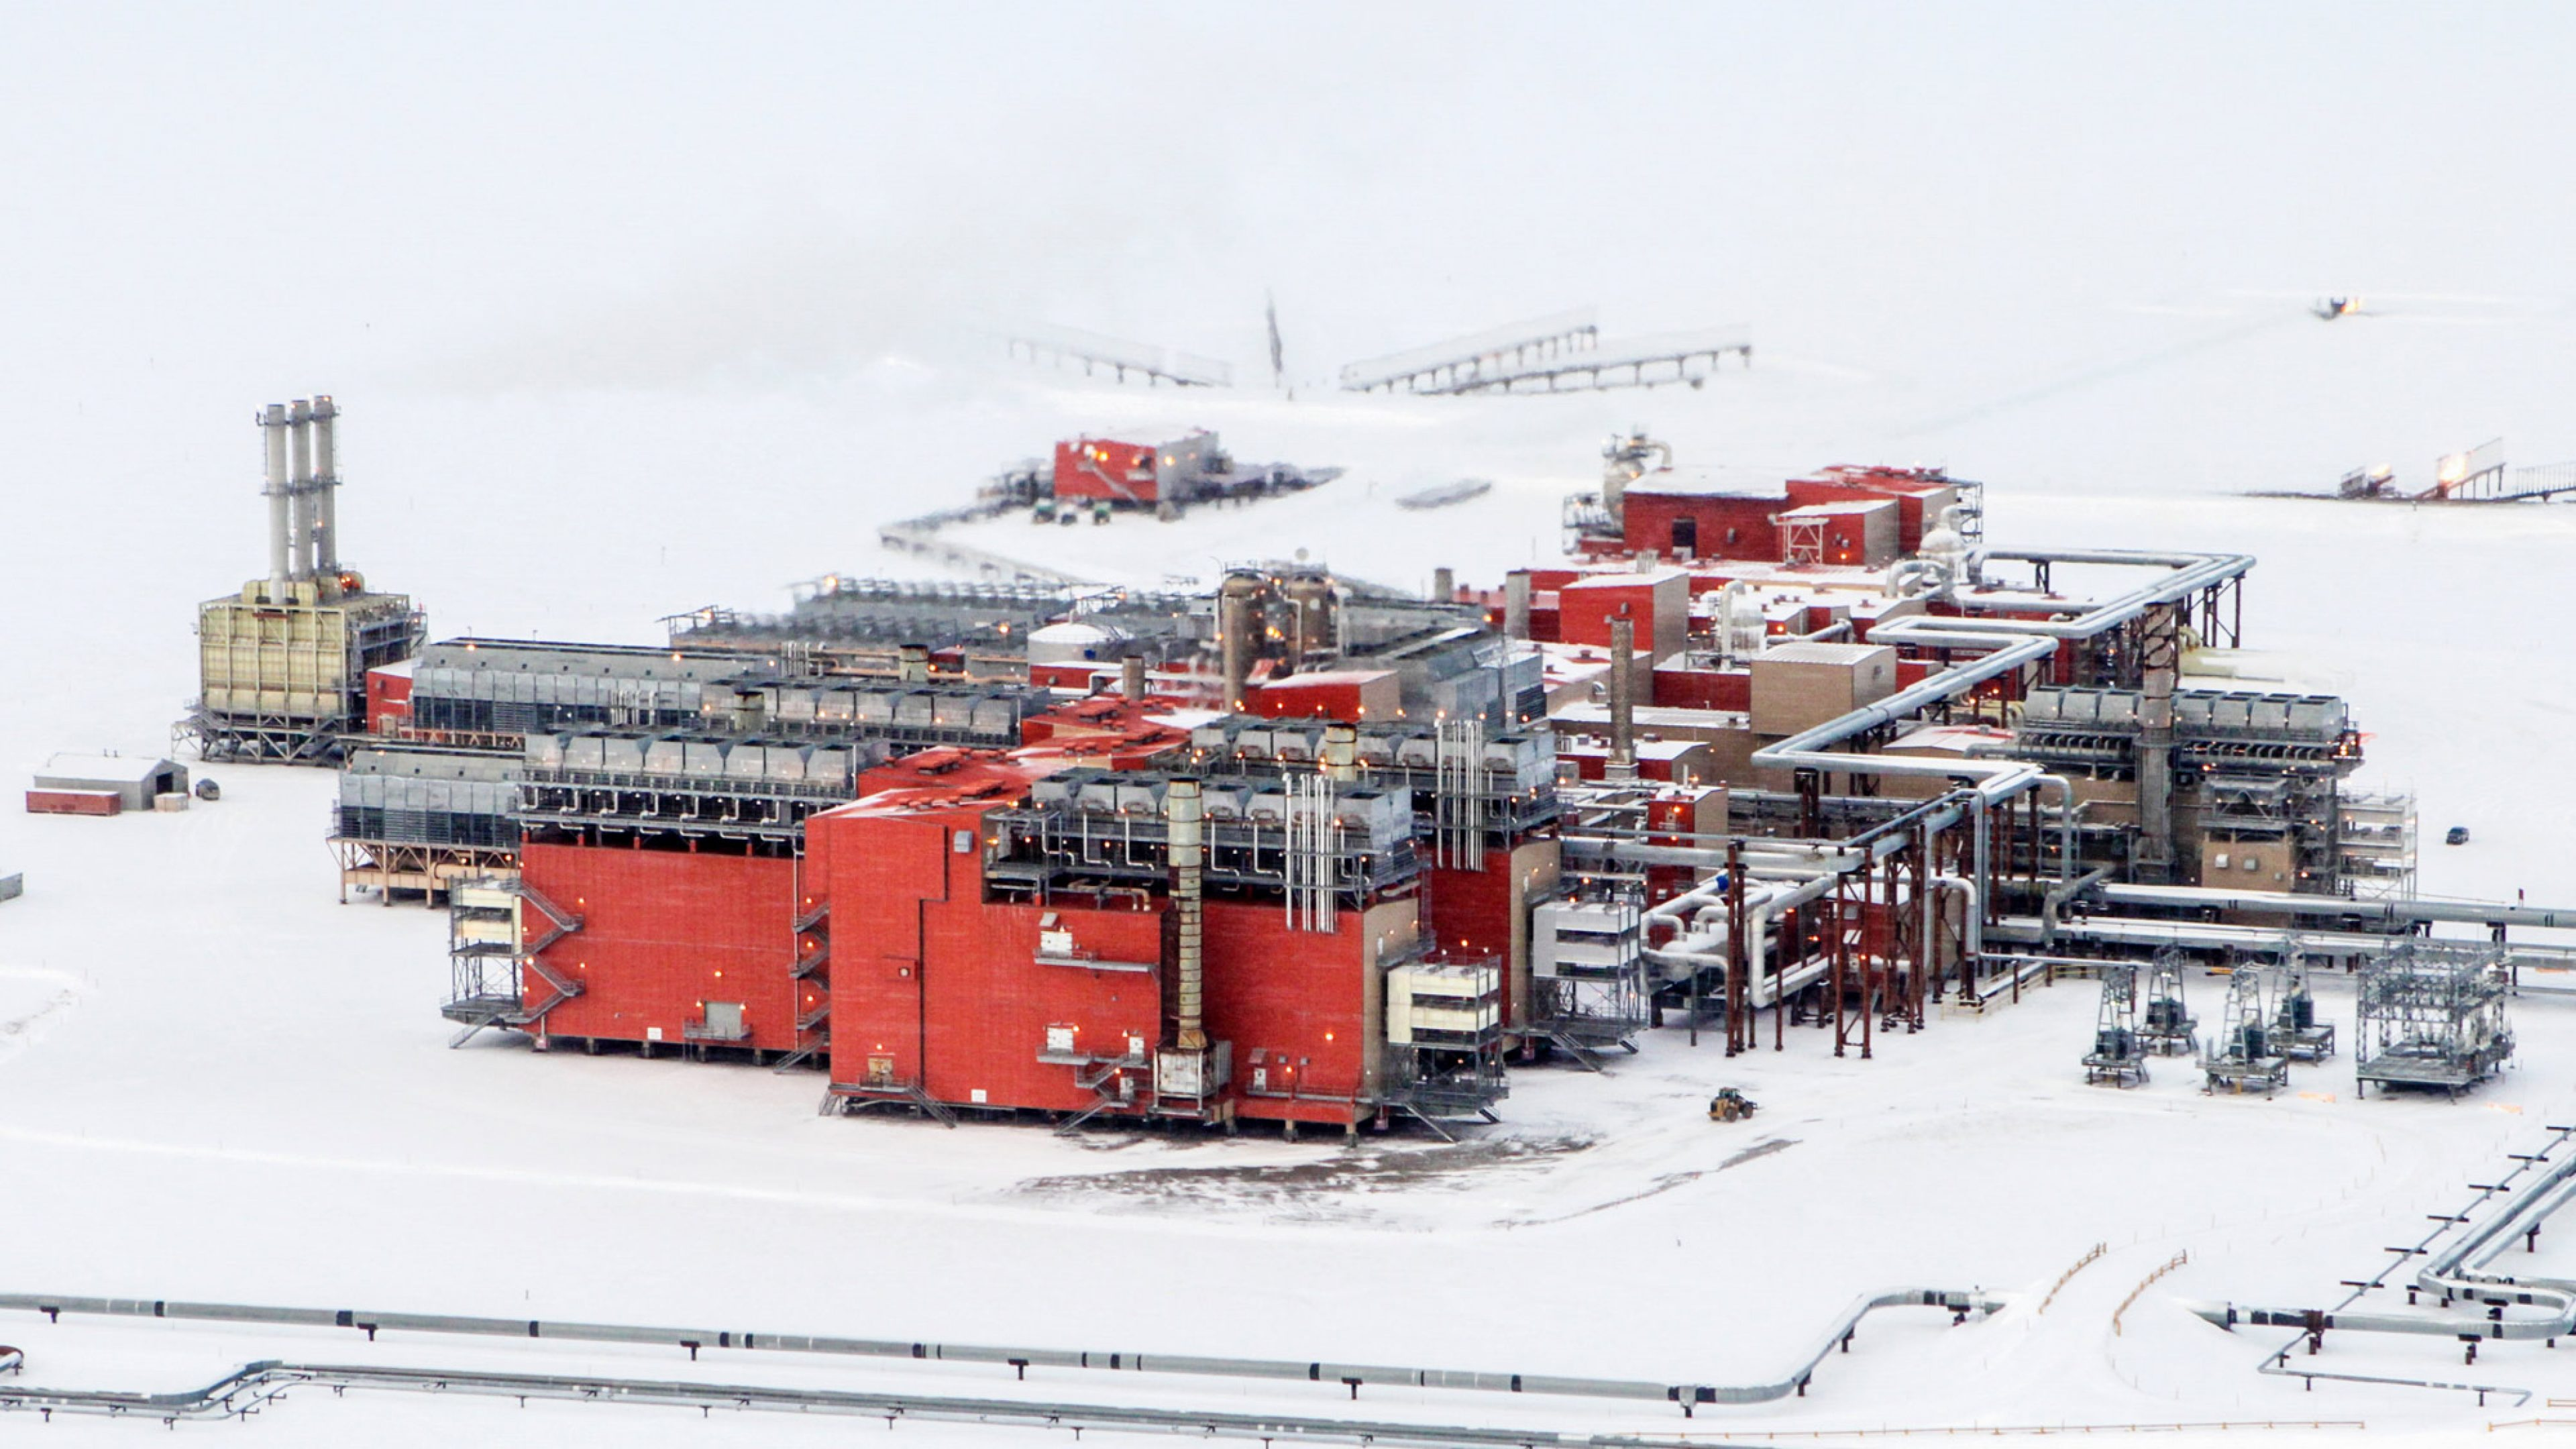 North Slope operations in the snow during an Alaskan winter